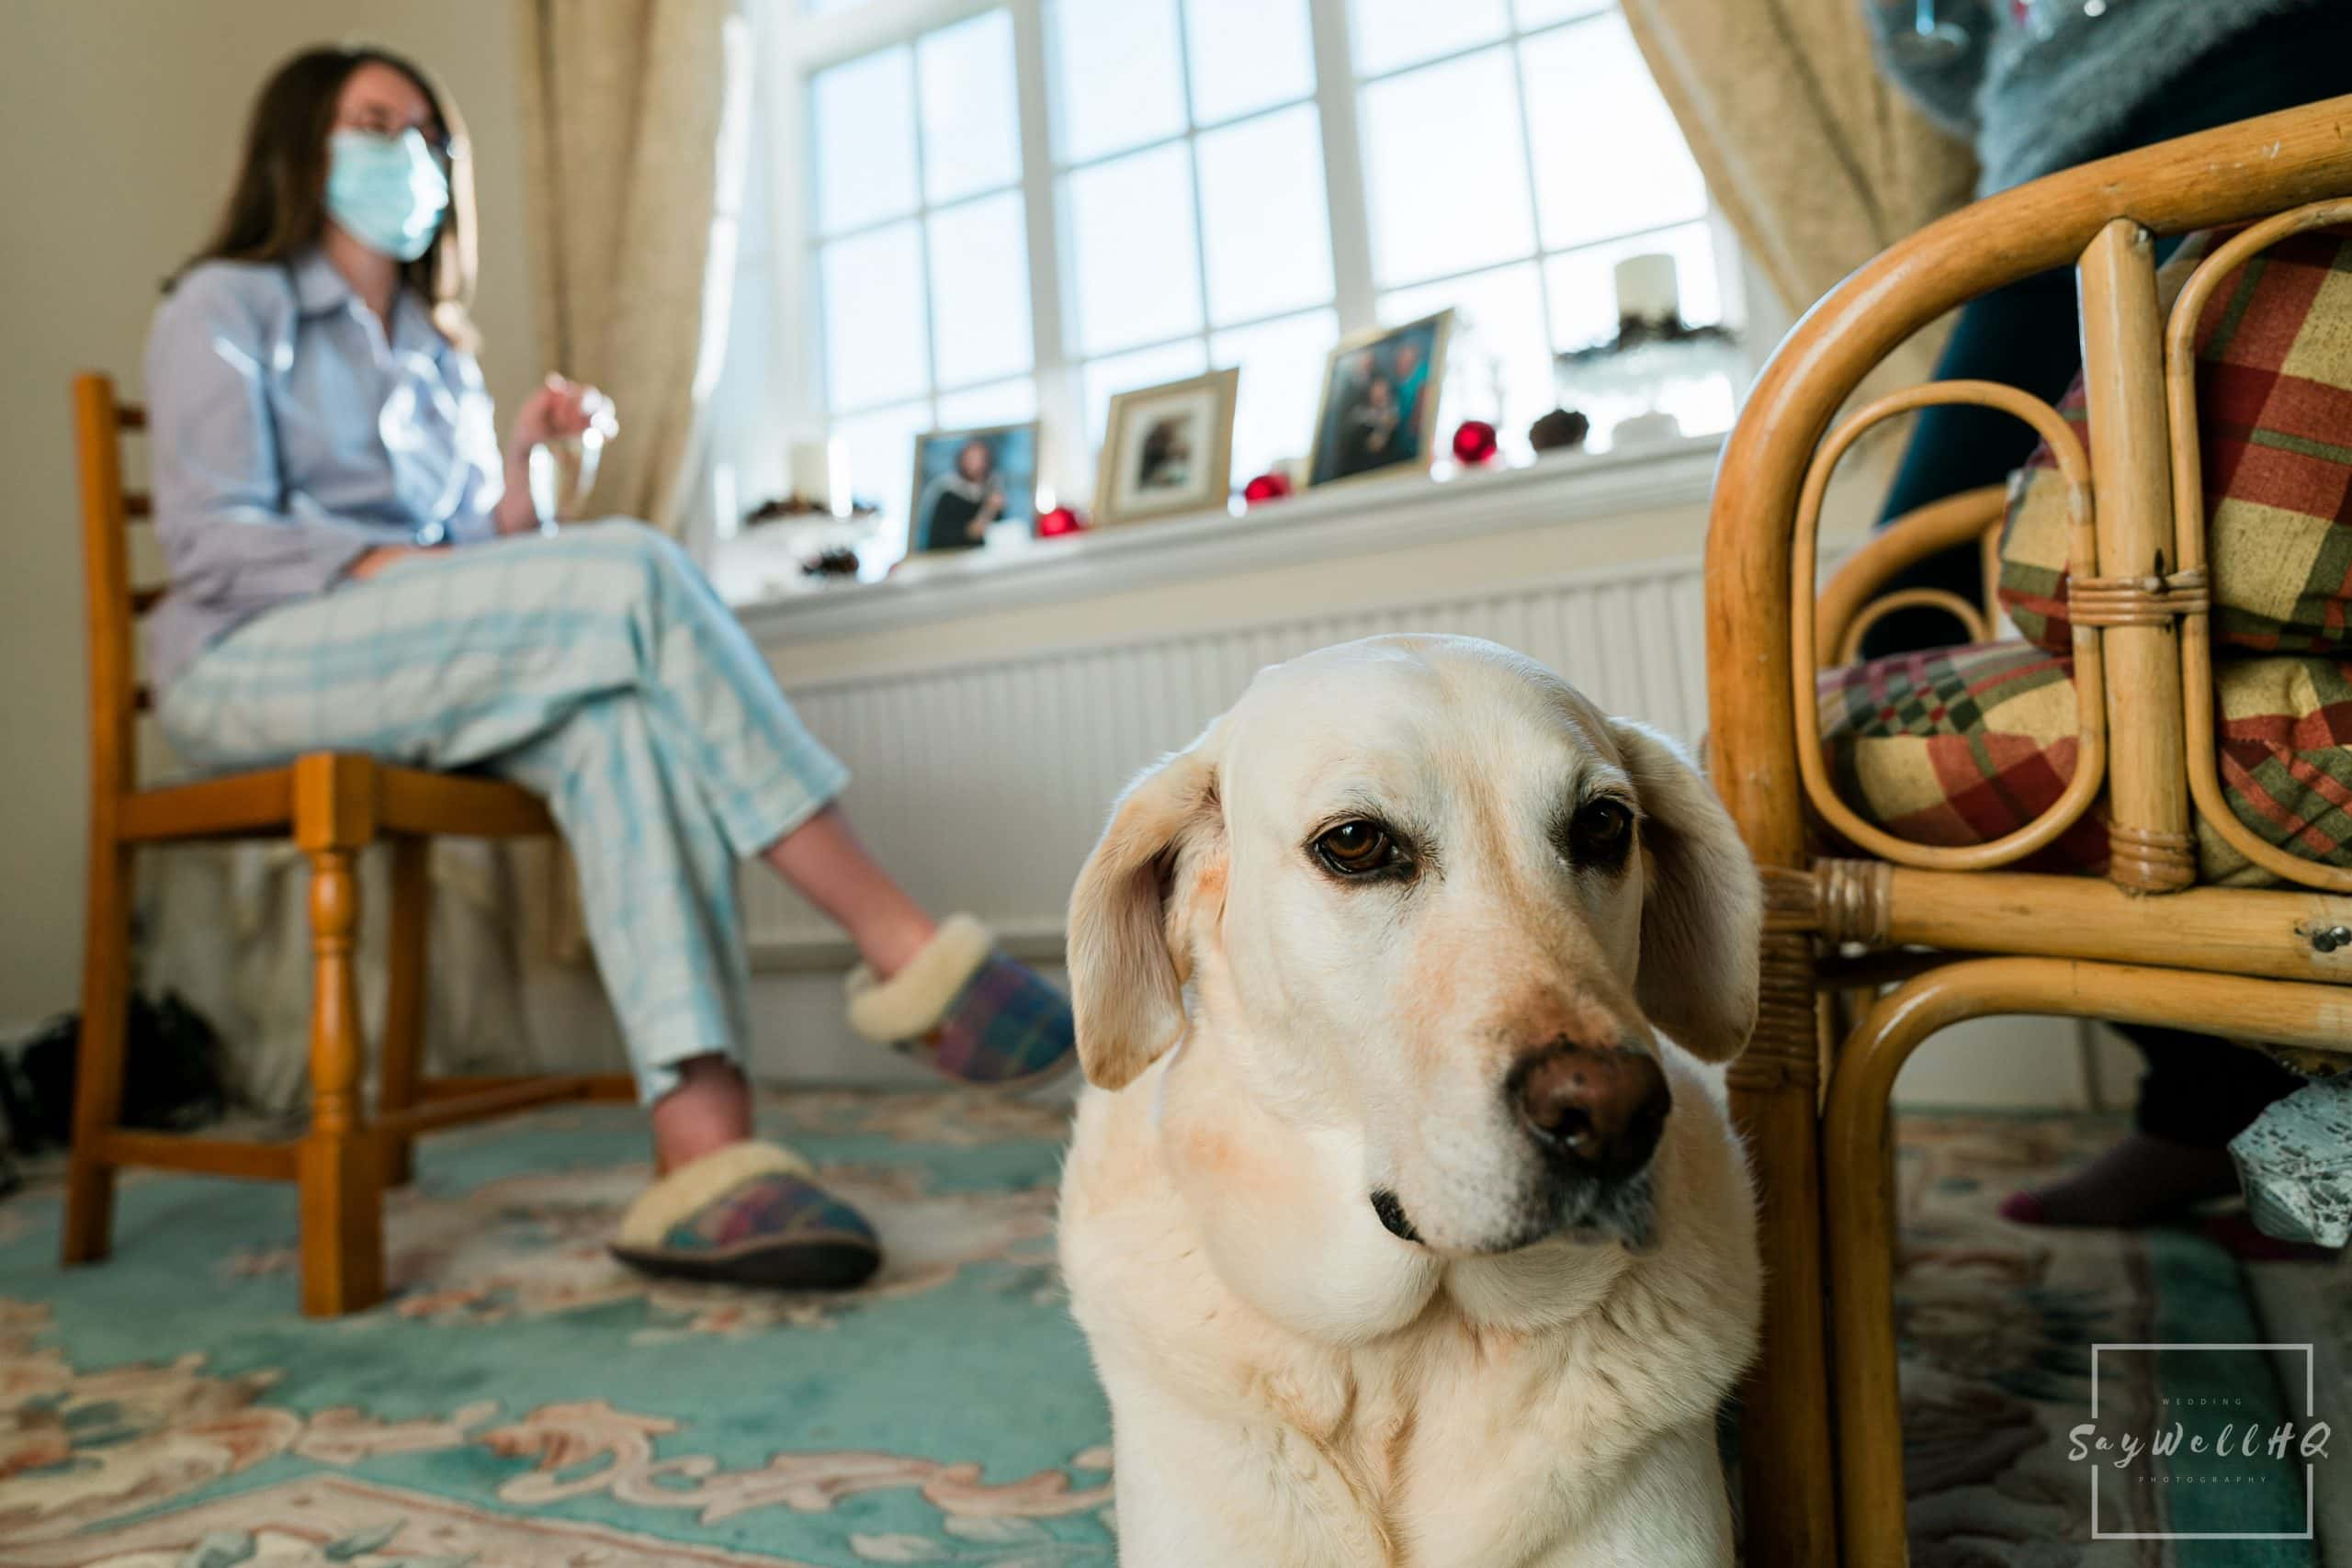 Millie the labrador keeping the Bride company on the day of her wedding - Vale of Belvoir Wedding Photography